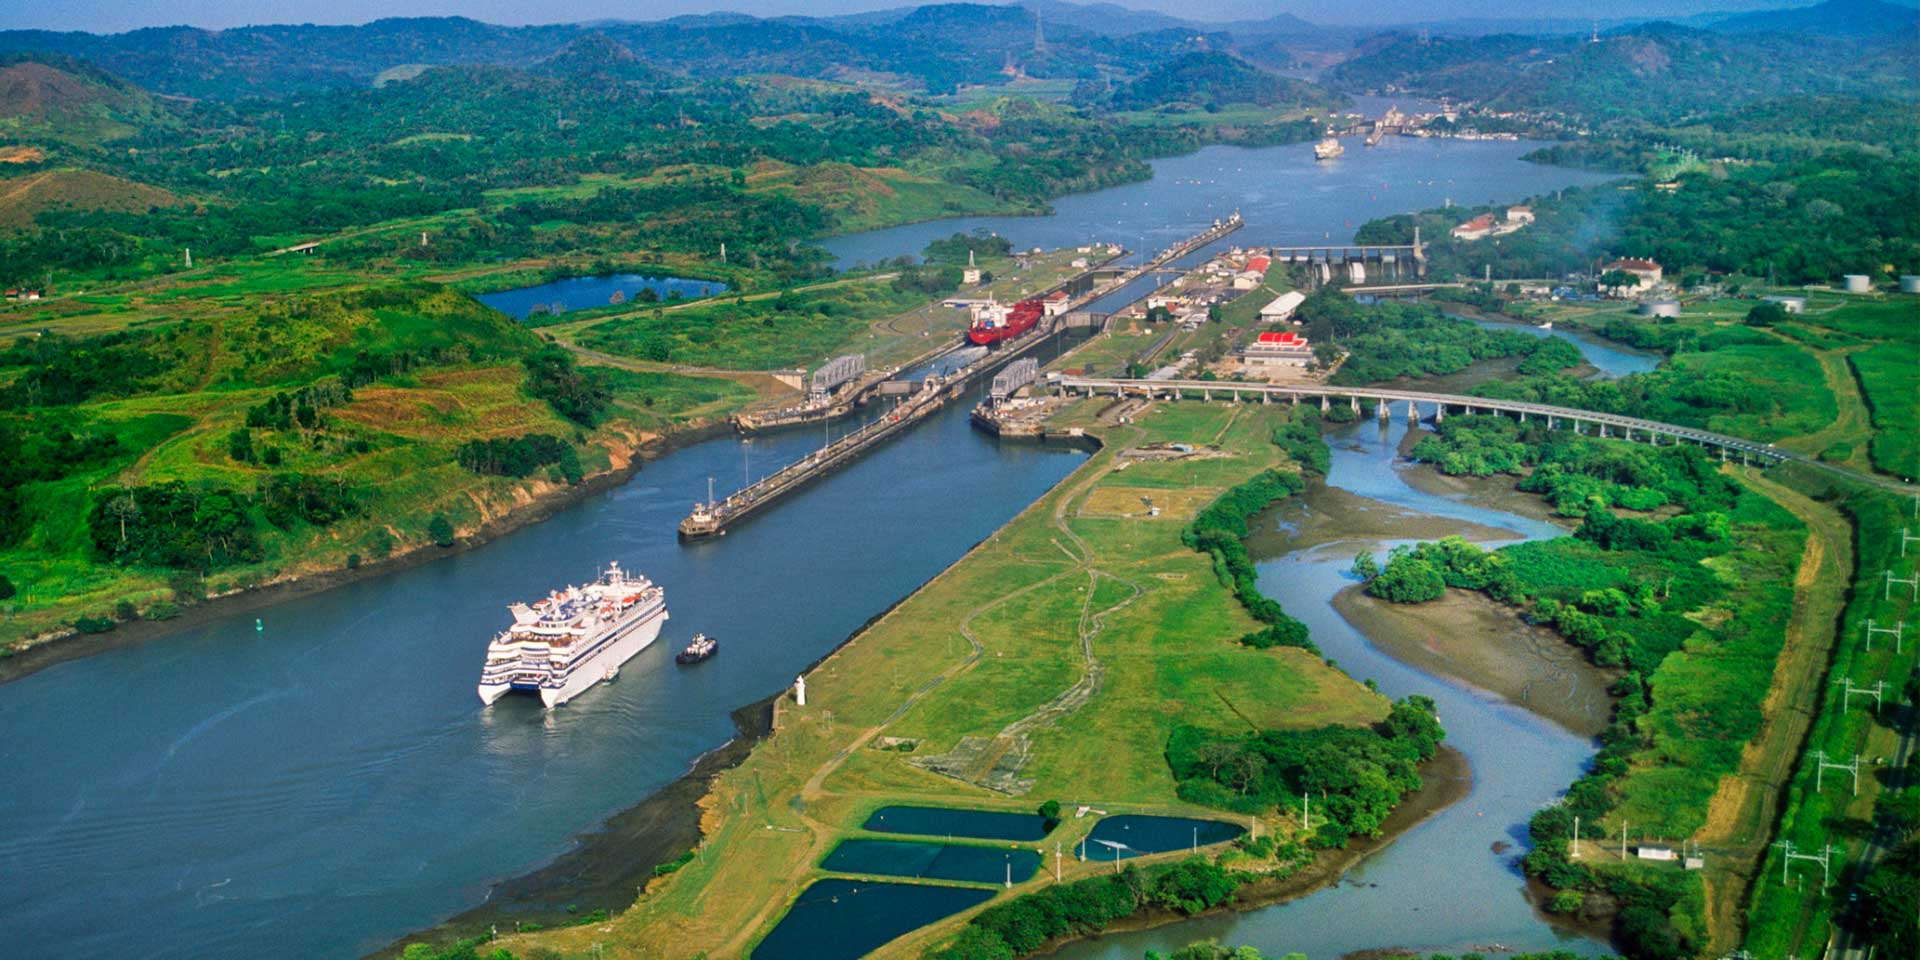 Luxury cruise ship in Panama Canal